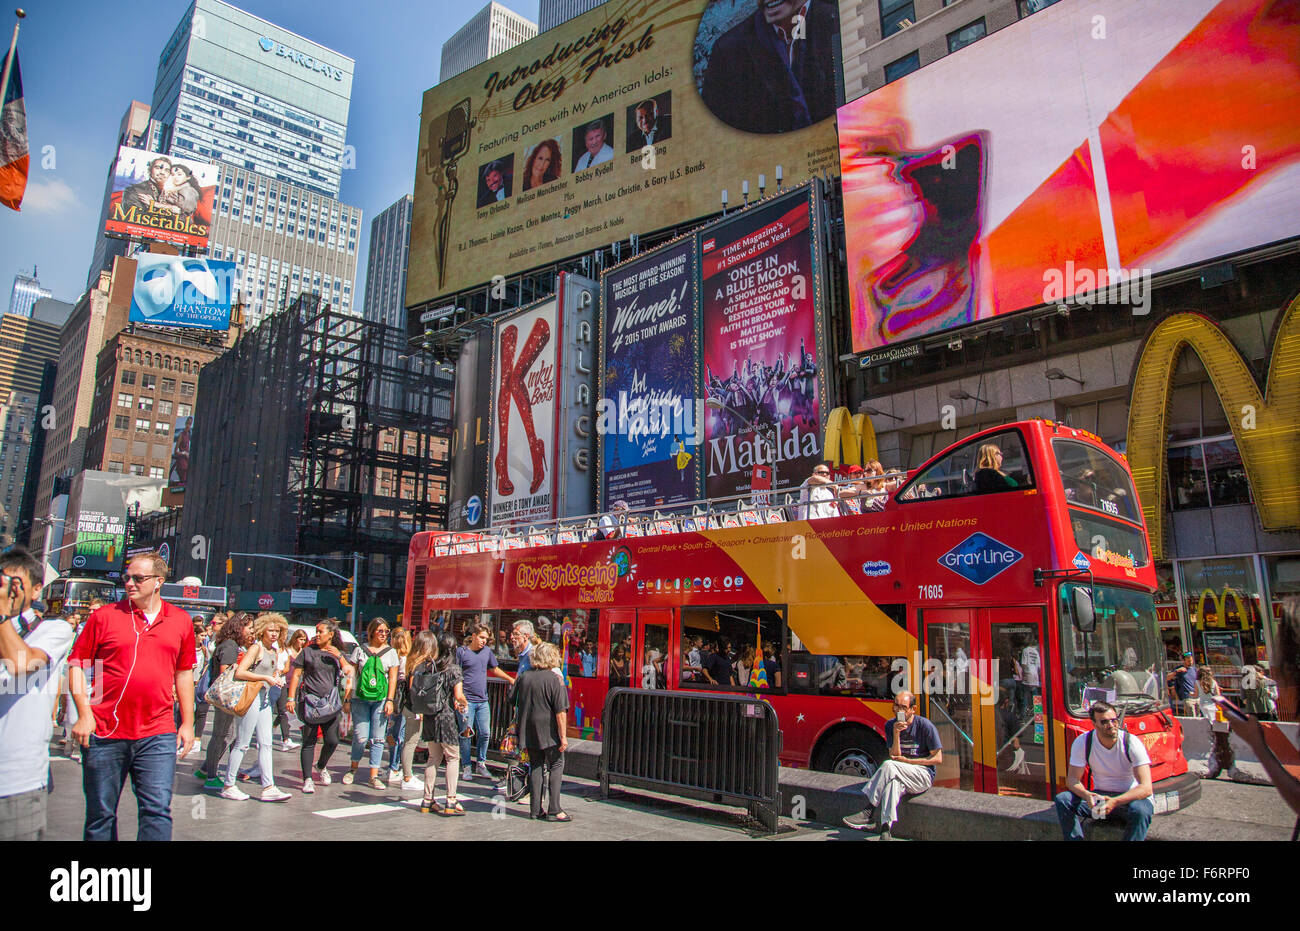 New York Double Decker Bus Tours. Book Online and Save $ All Around Town 24 Hour Tour + Free Boat Tour. See New York City from the top with this special combo ticket that includes both our All Around Town Tour and tickets to the Top of the Rock. SEE DETAILS +.